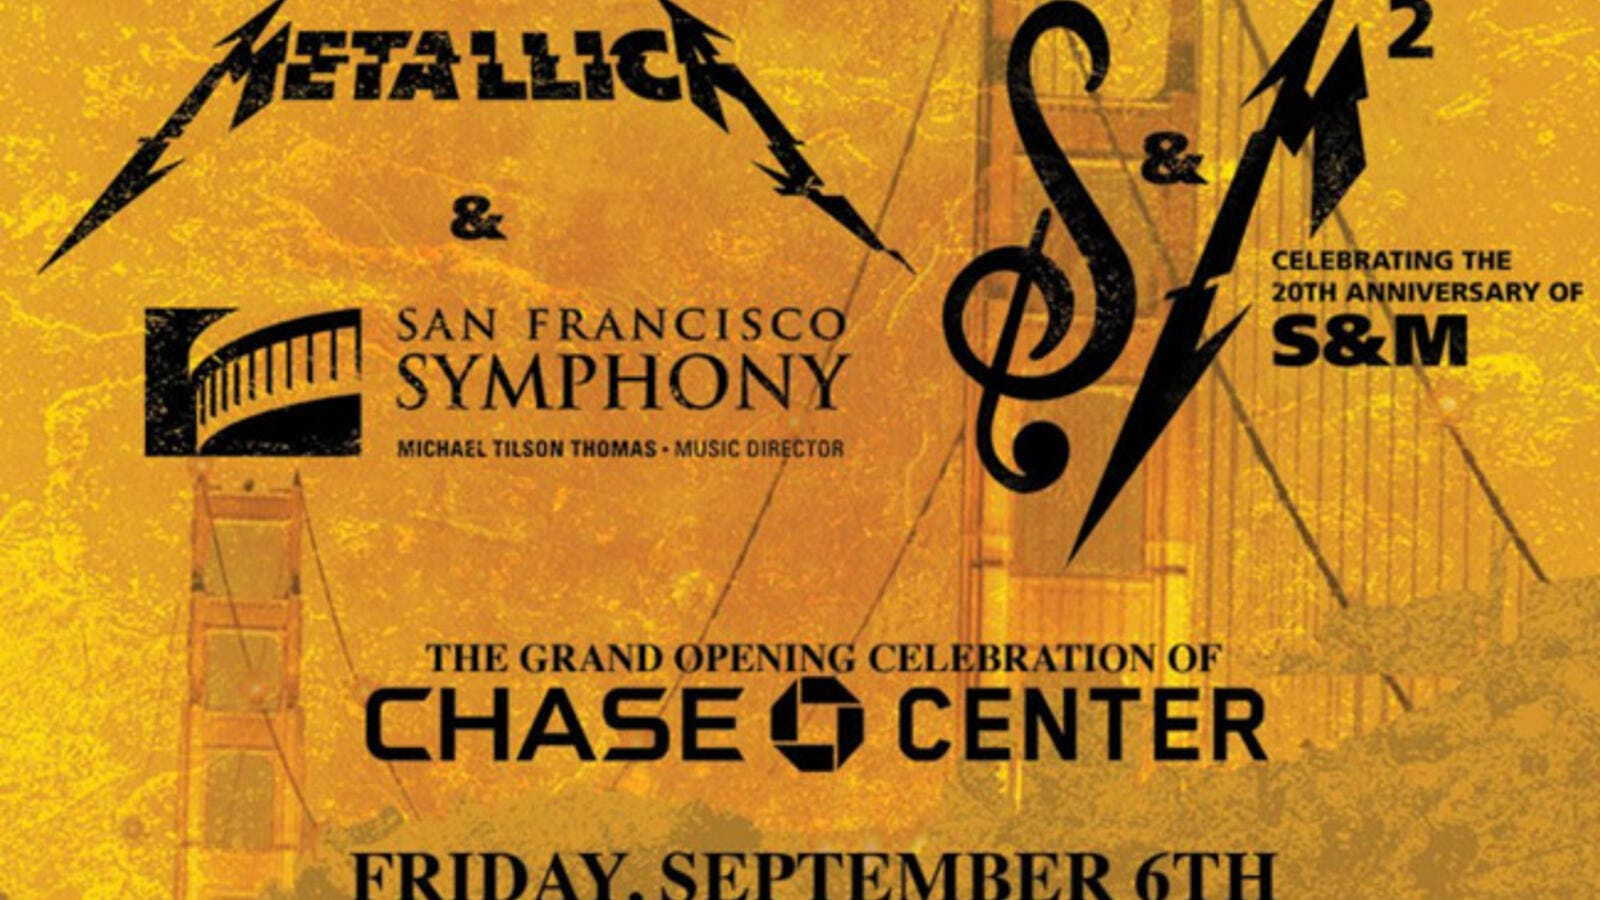 The concert also celebrates the opening of the Chase Center in San Francisco (Source: metallica / Twitter  )